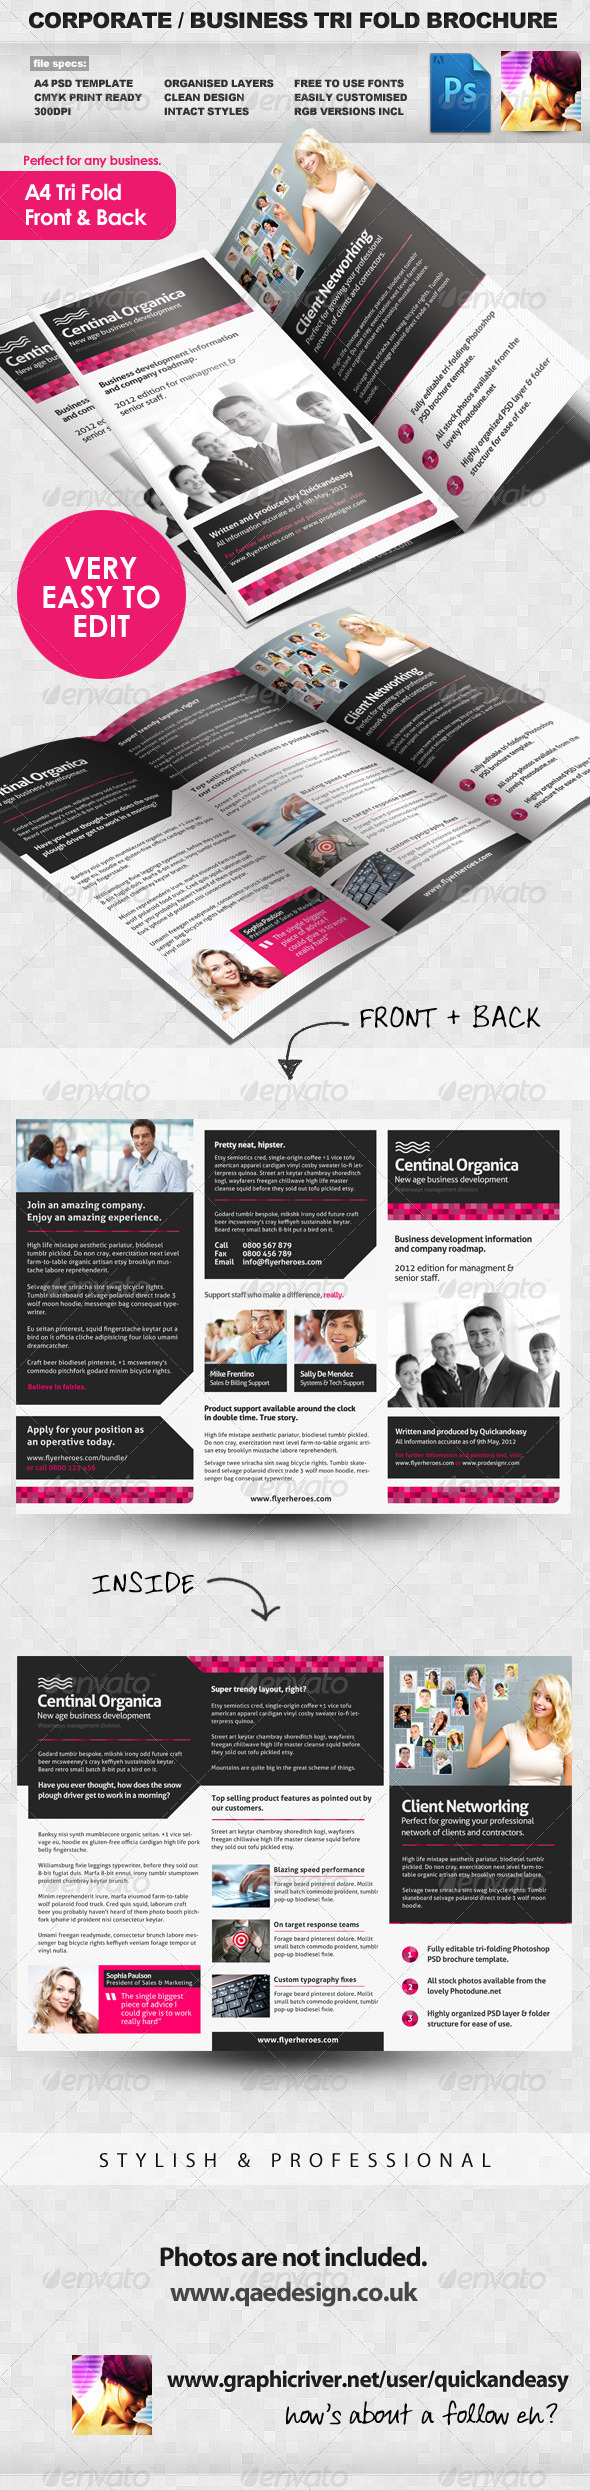 GraphicRiver Corporate Business Tri Fold Brochure 2278426